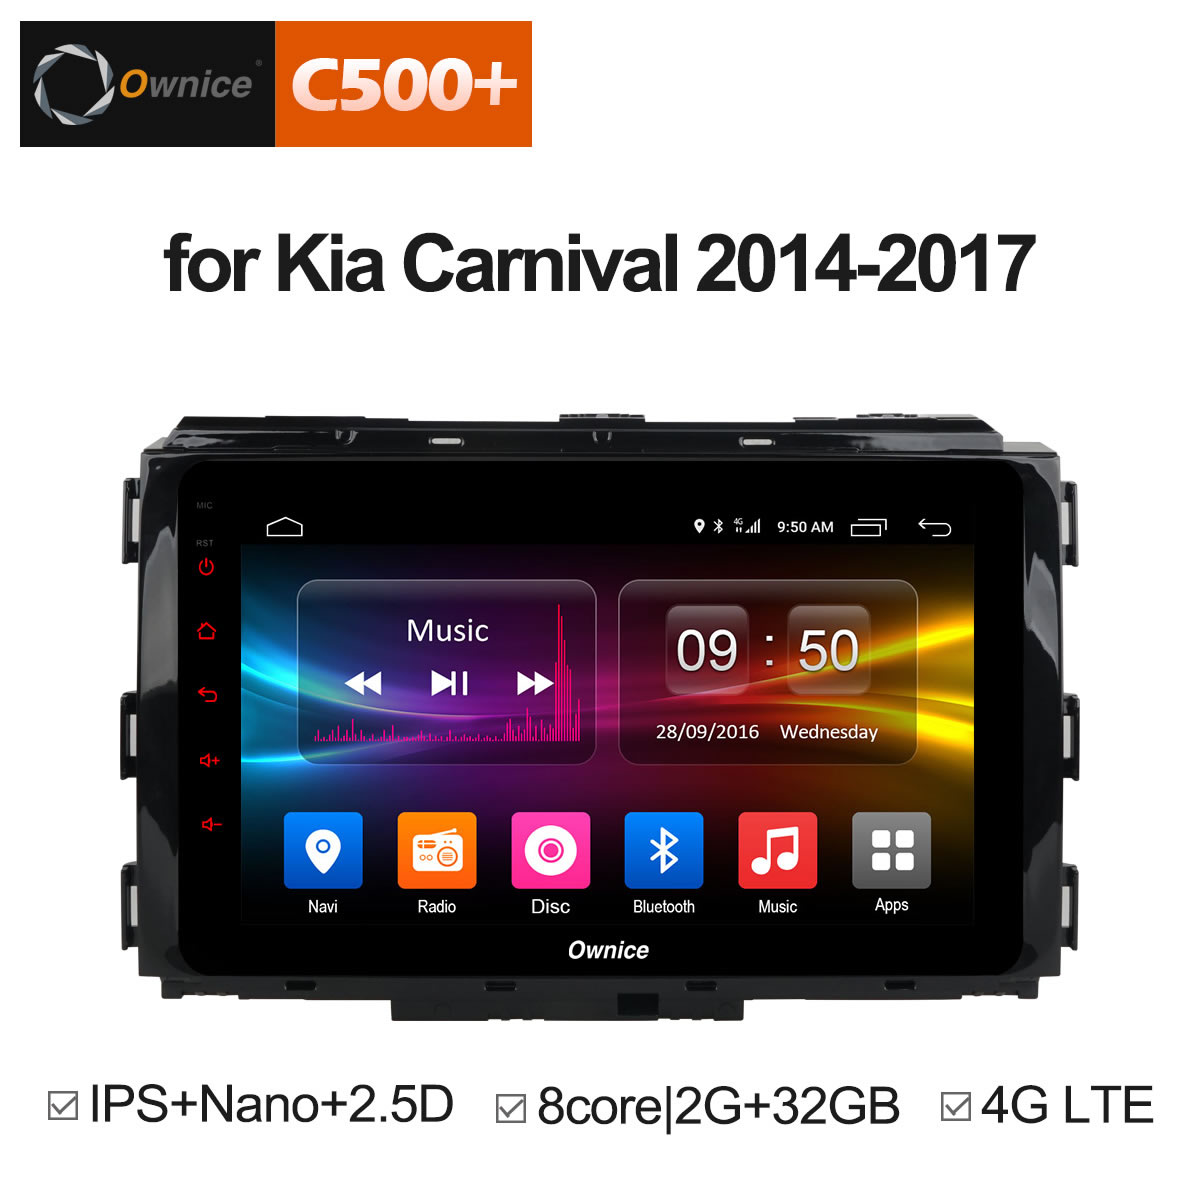 Ownice C500+ G10 32G ROM Octa Core Android 8.1 Car DVD Radio GPS Navigation Player for Kia Carnival 2014 - 2017 Carplay 4G LTE ownice c500 android 6 0 octa 8 core 4g sim lte car dvd player for great wall hover h3 h5 with gps navigation radio 32g rom